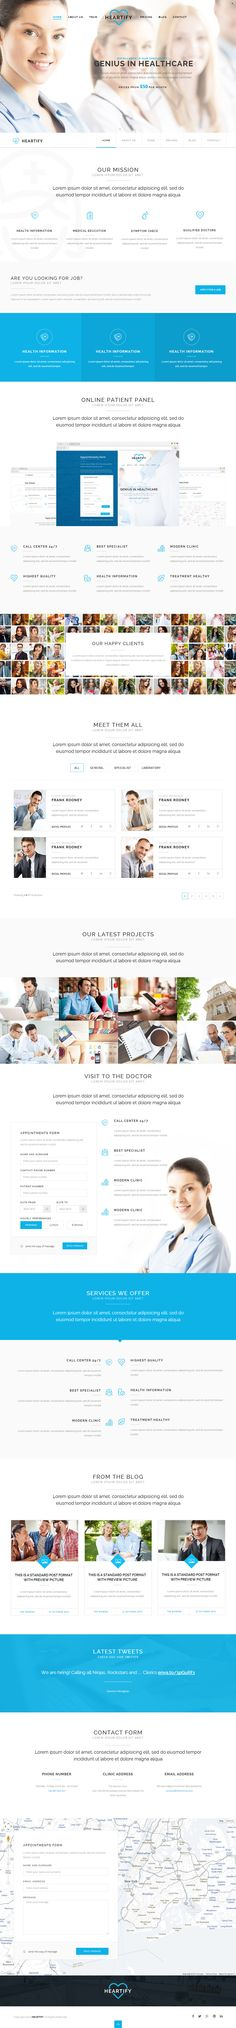 Heartify is Premium Responsive Retina Parallax HTML5 Medical and Healthcare Template. One Page. Bootstrap. Revolution Slider. http://www.responsivemiracle.com/cms/heartify-premium-responsive-medical-health-html5-template/